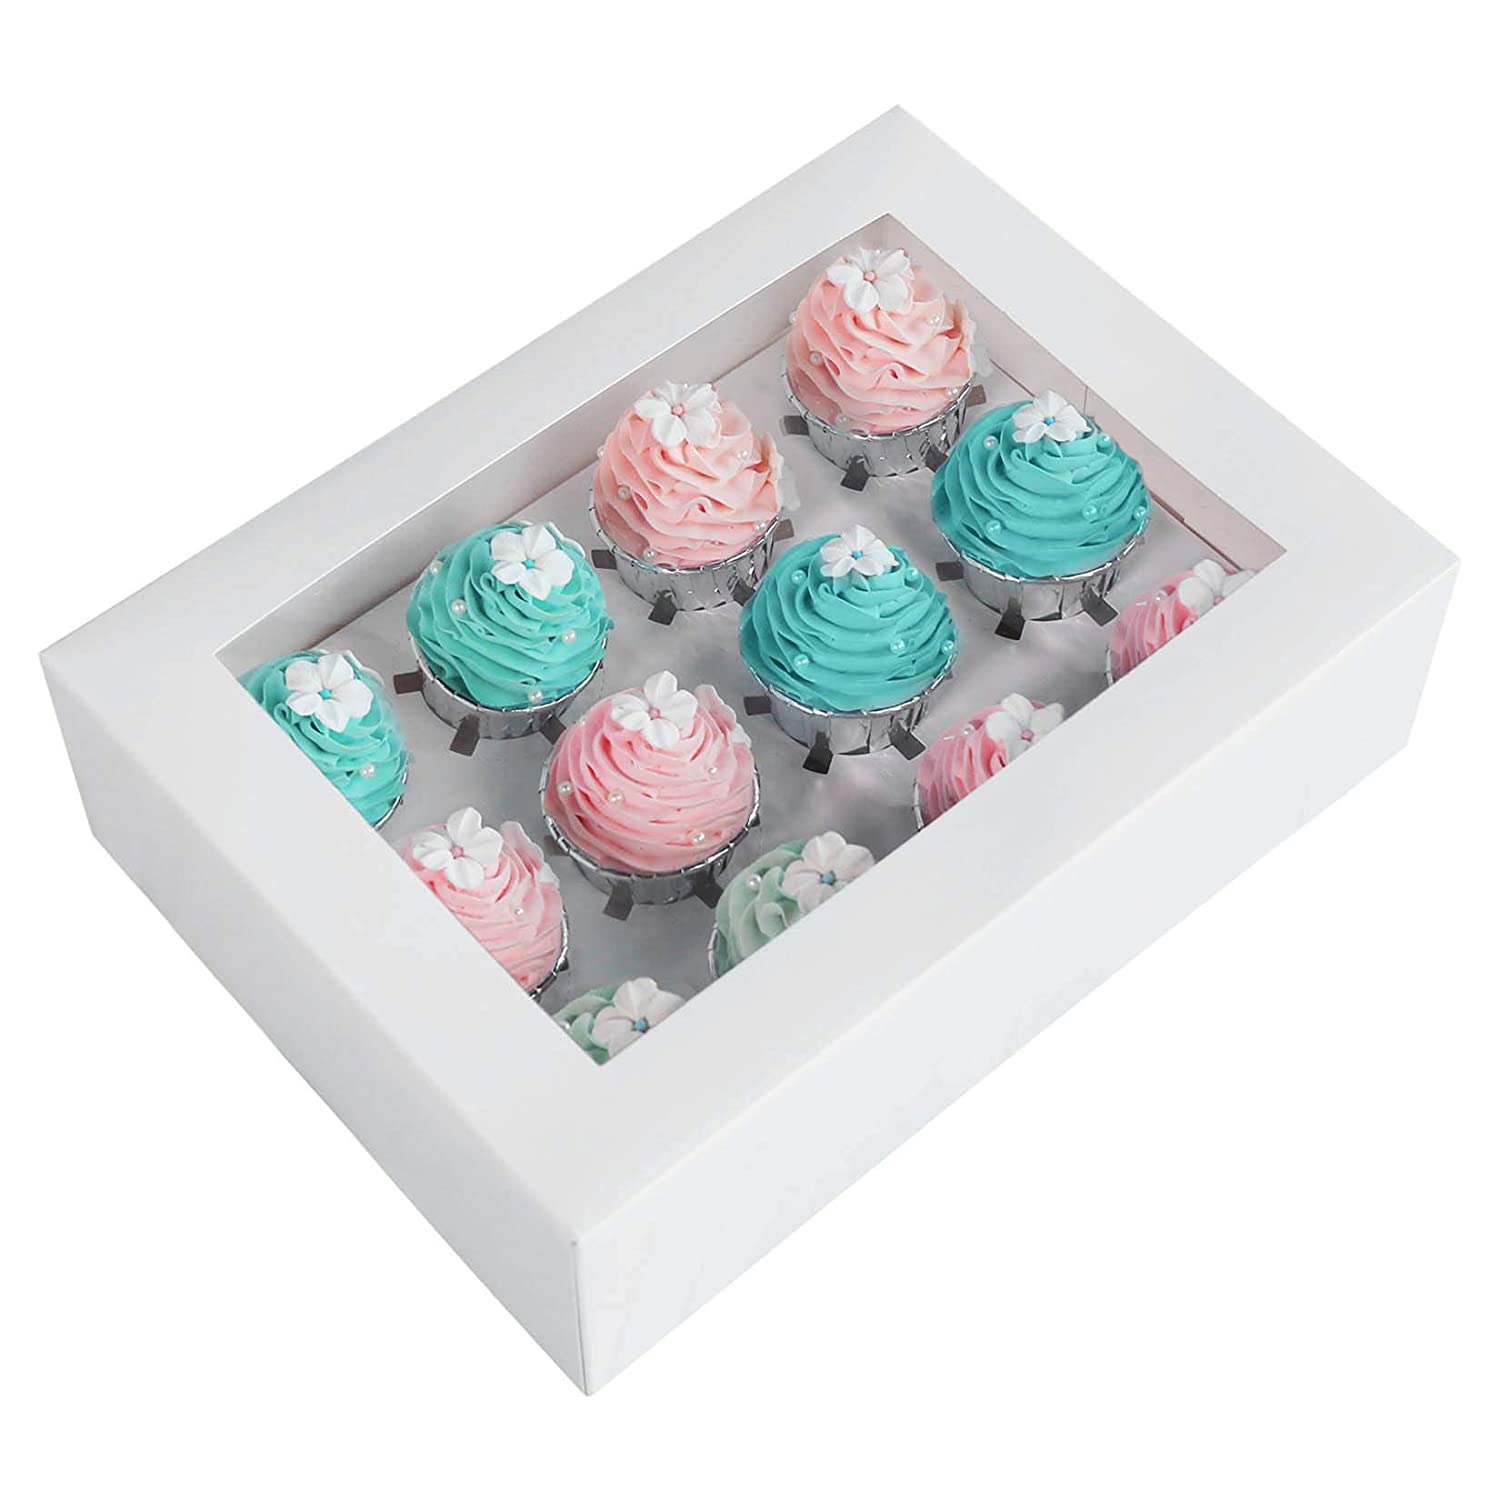 15-Pack White Cupcake Boxes 12 Holders Cake Carrier Food Grade Kraft Pop-up Bakery Boxes 13.8 x 9.5 x 4inch with Inserts and PVC Windows Fits 12 Cavity Cupcake Pack of 15